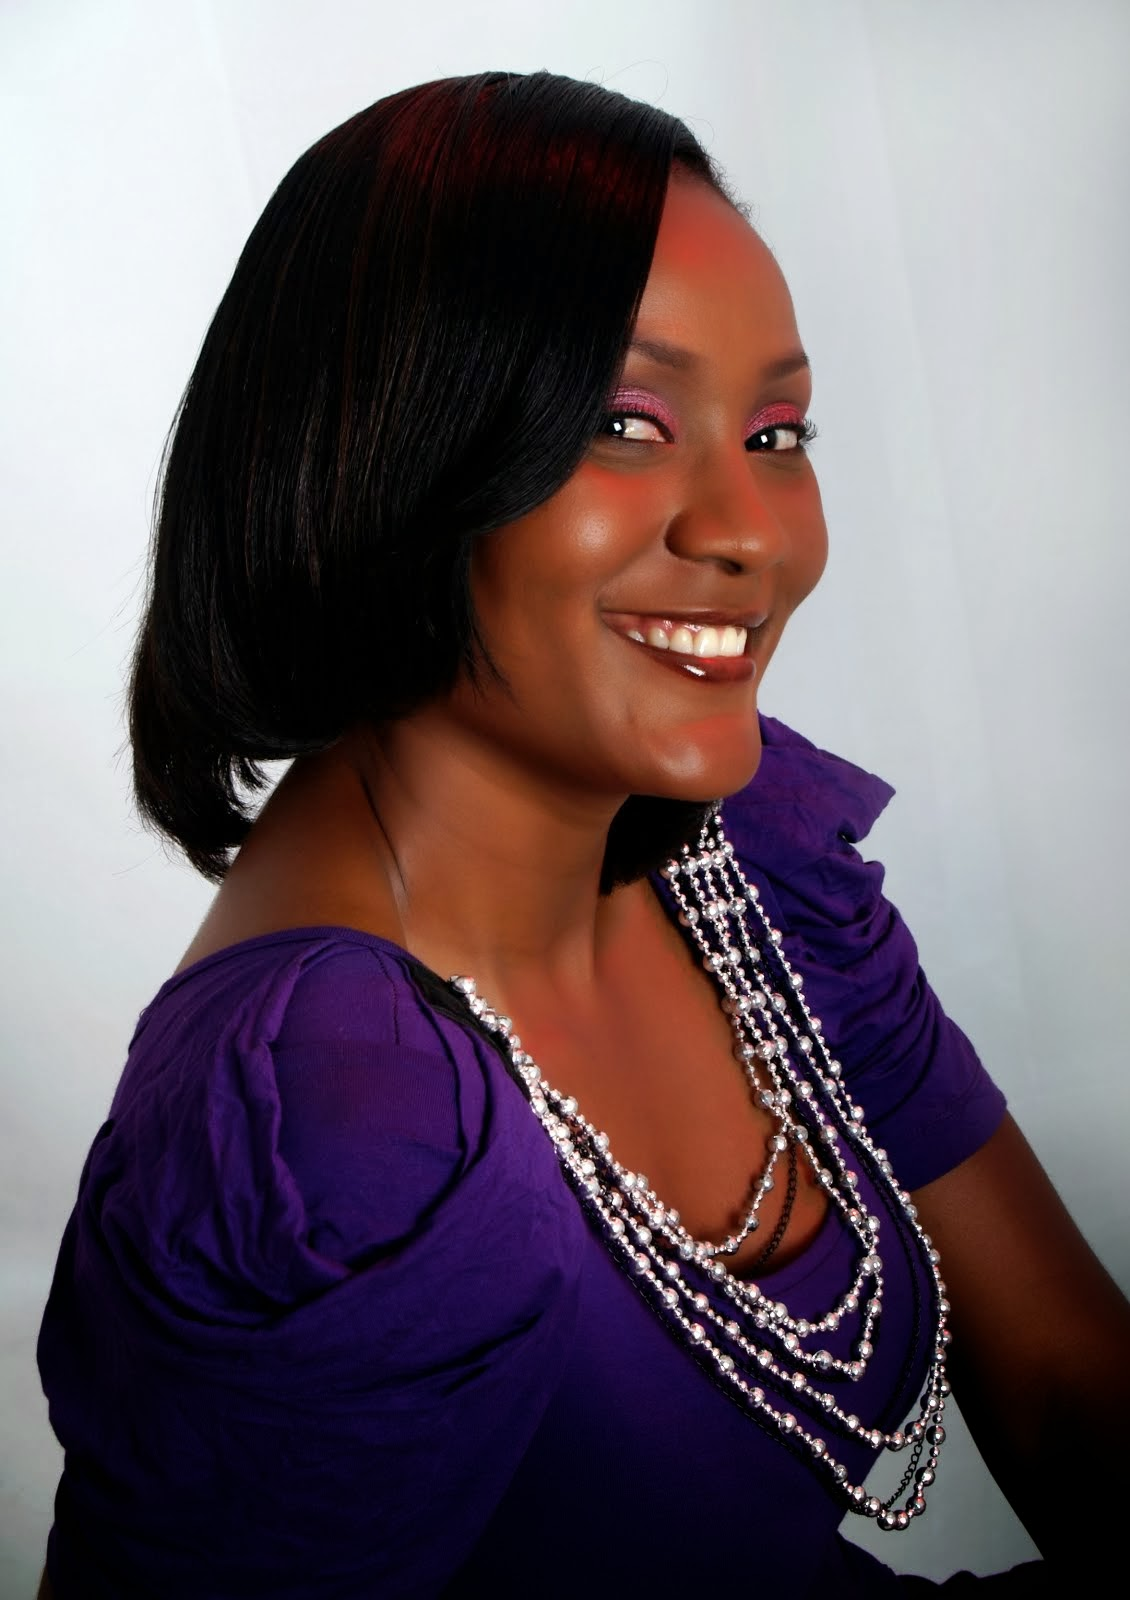 MEET BOLA AKINBOADE-BELLO